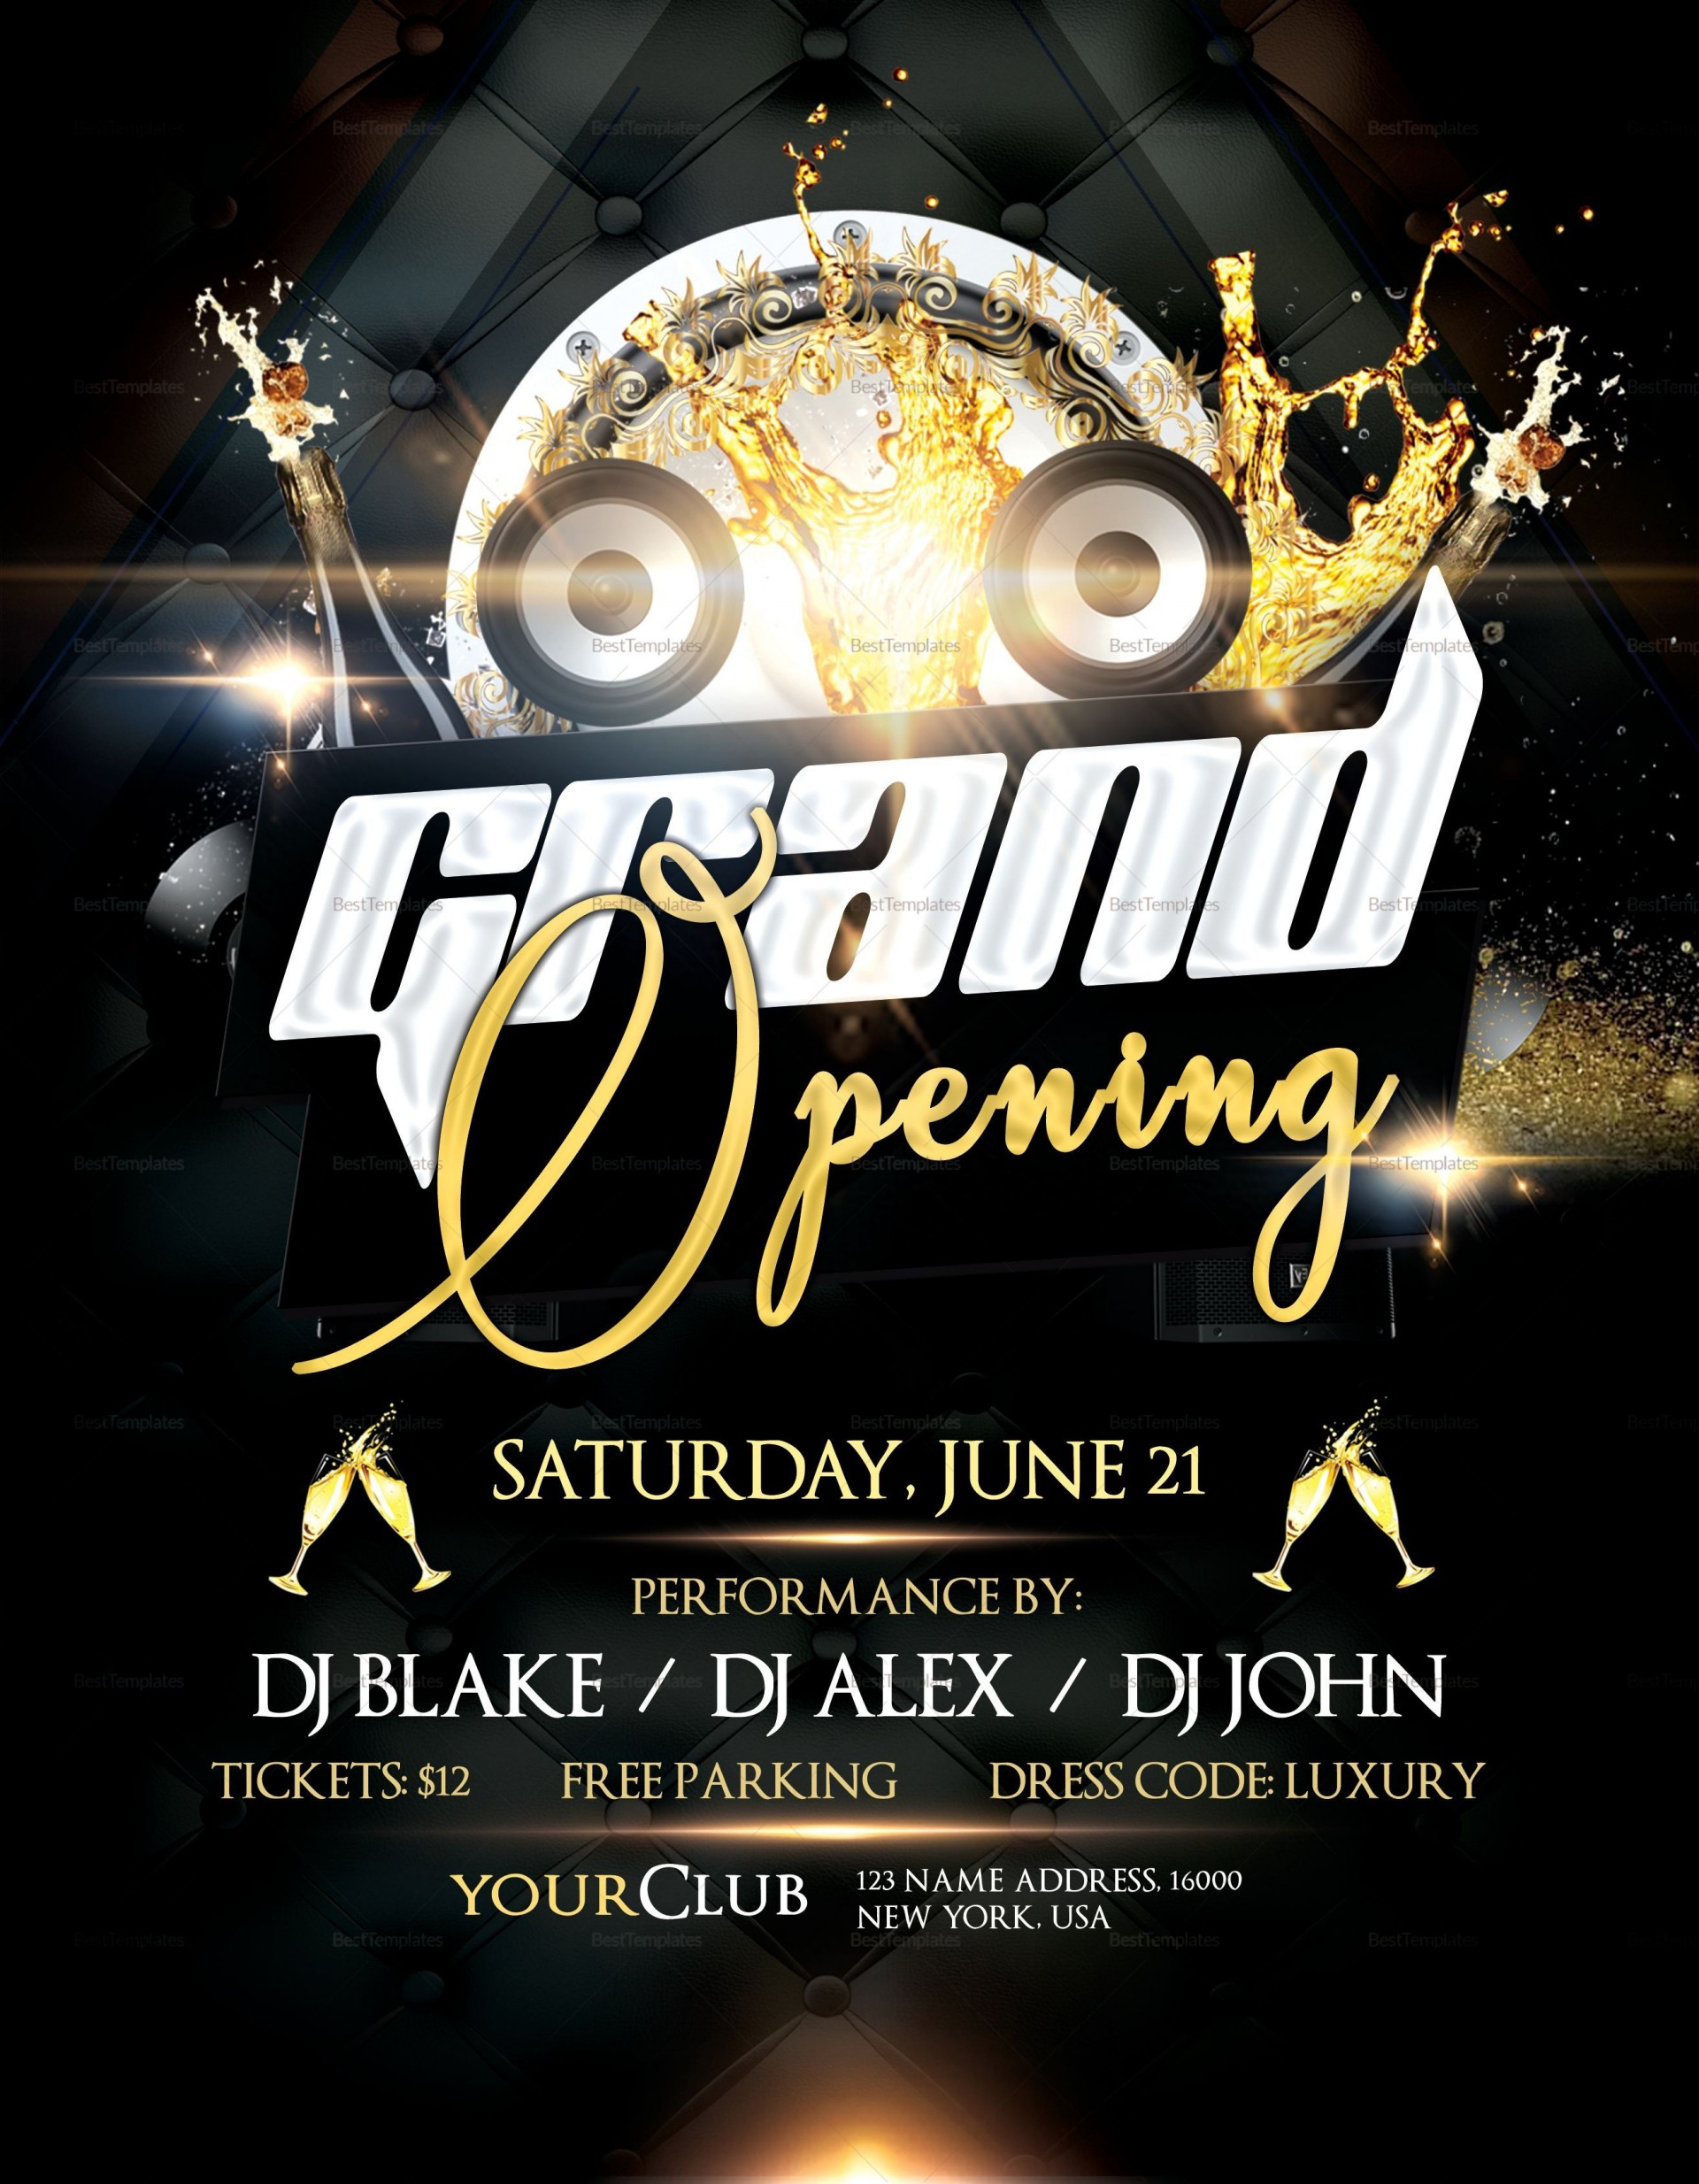 006 Stunning Grand Opening Flyer Template Example  Free Psd Busines1920